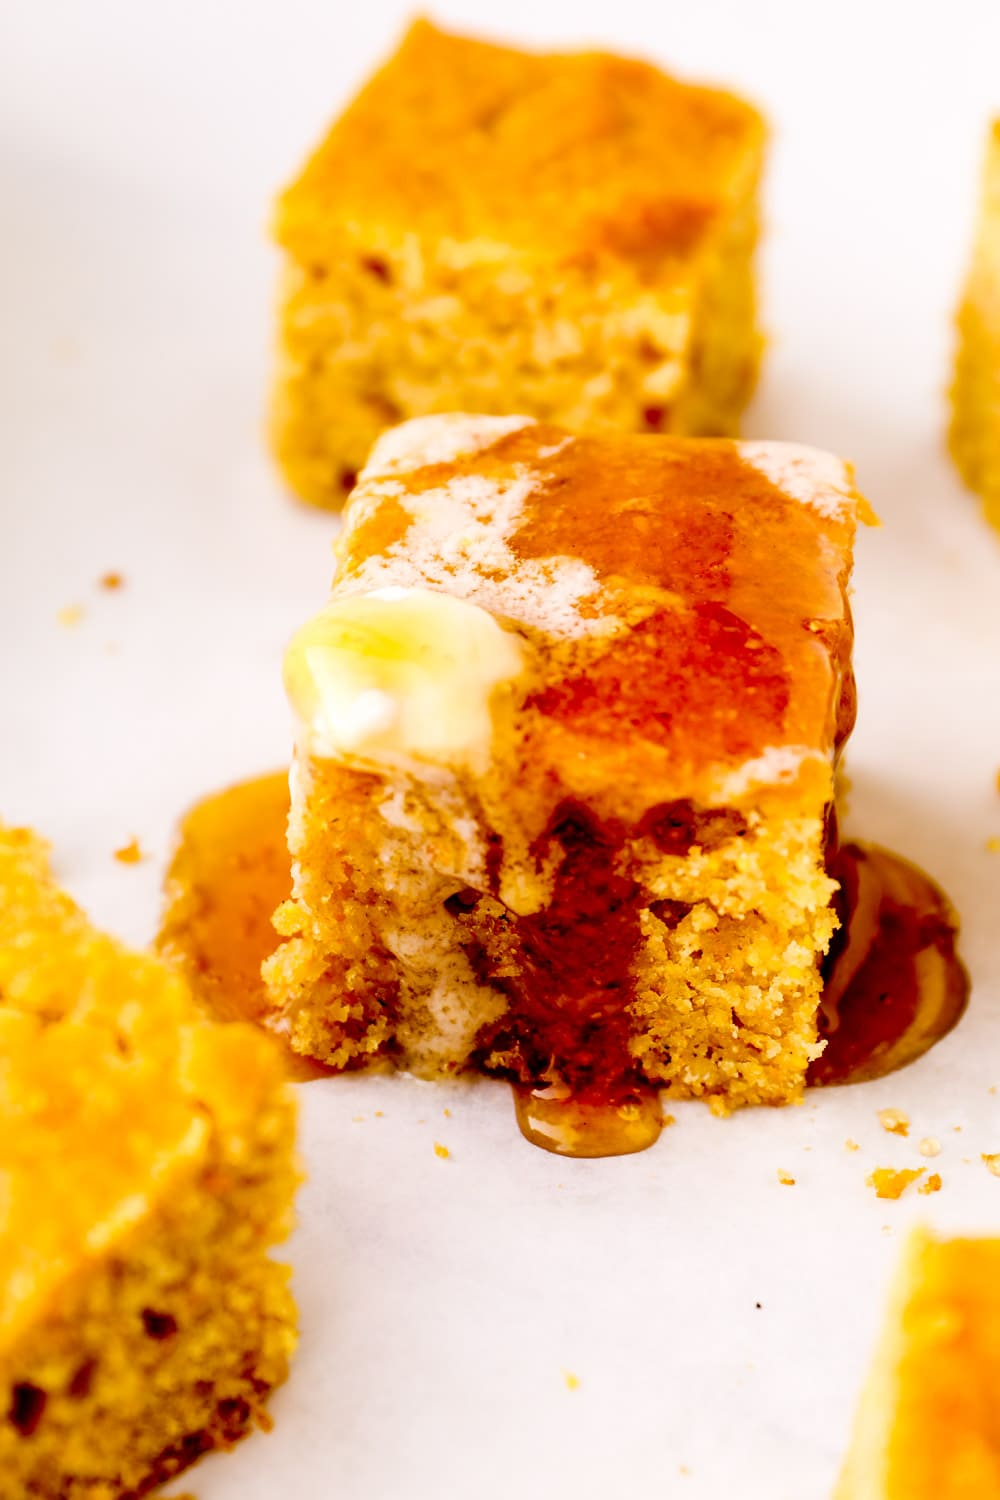 Butter and honey dripping down the sides of a slice of gluten free cornbread.